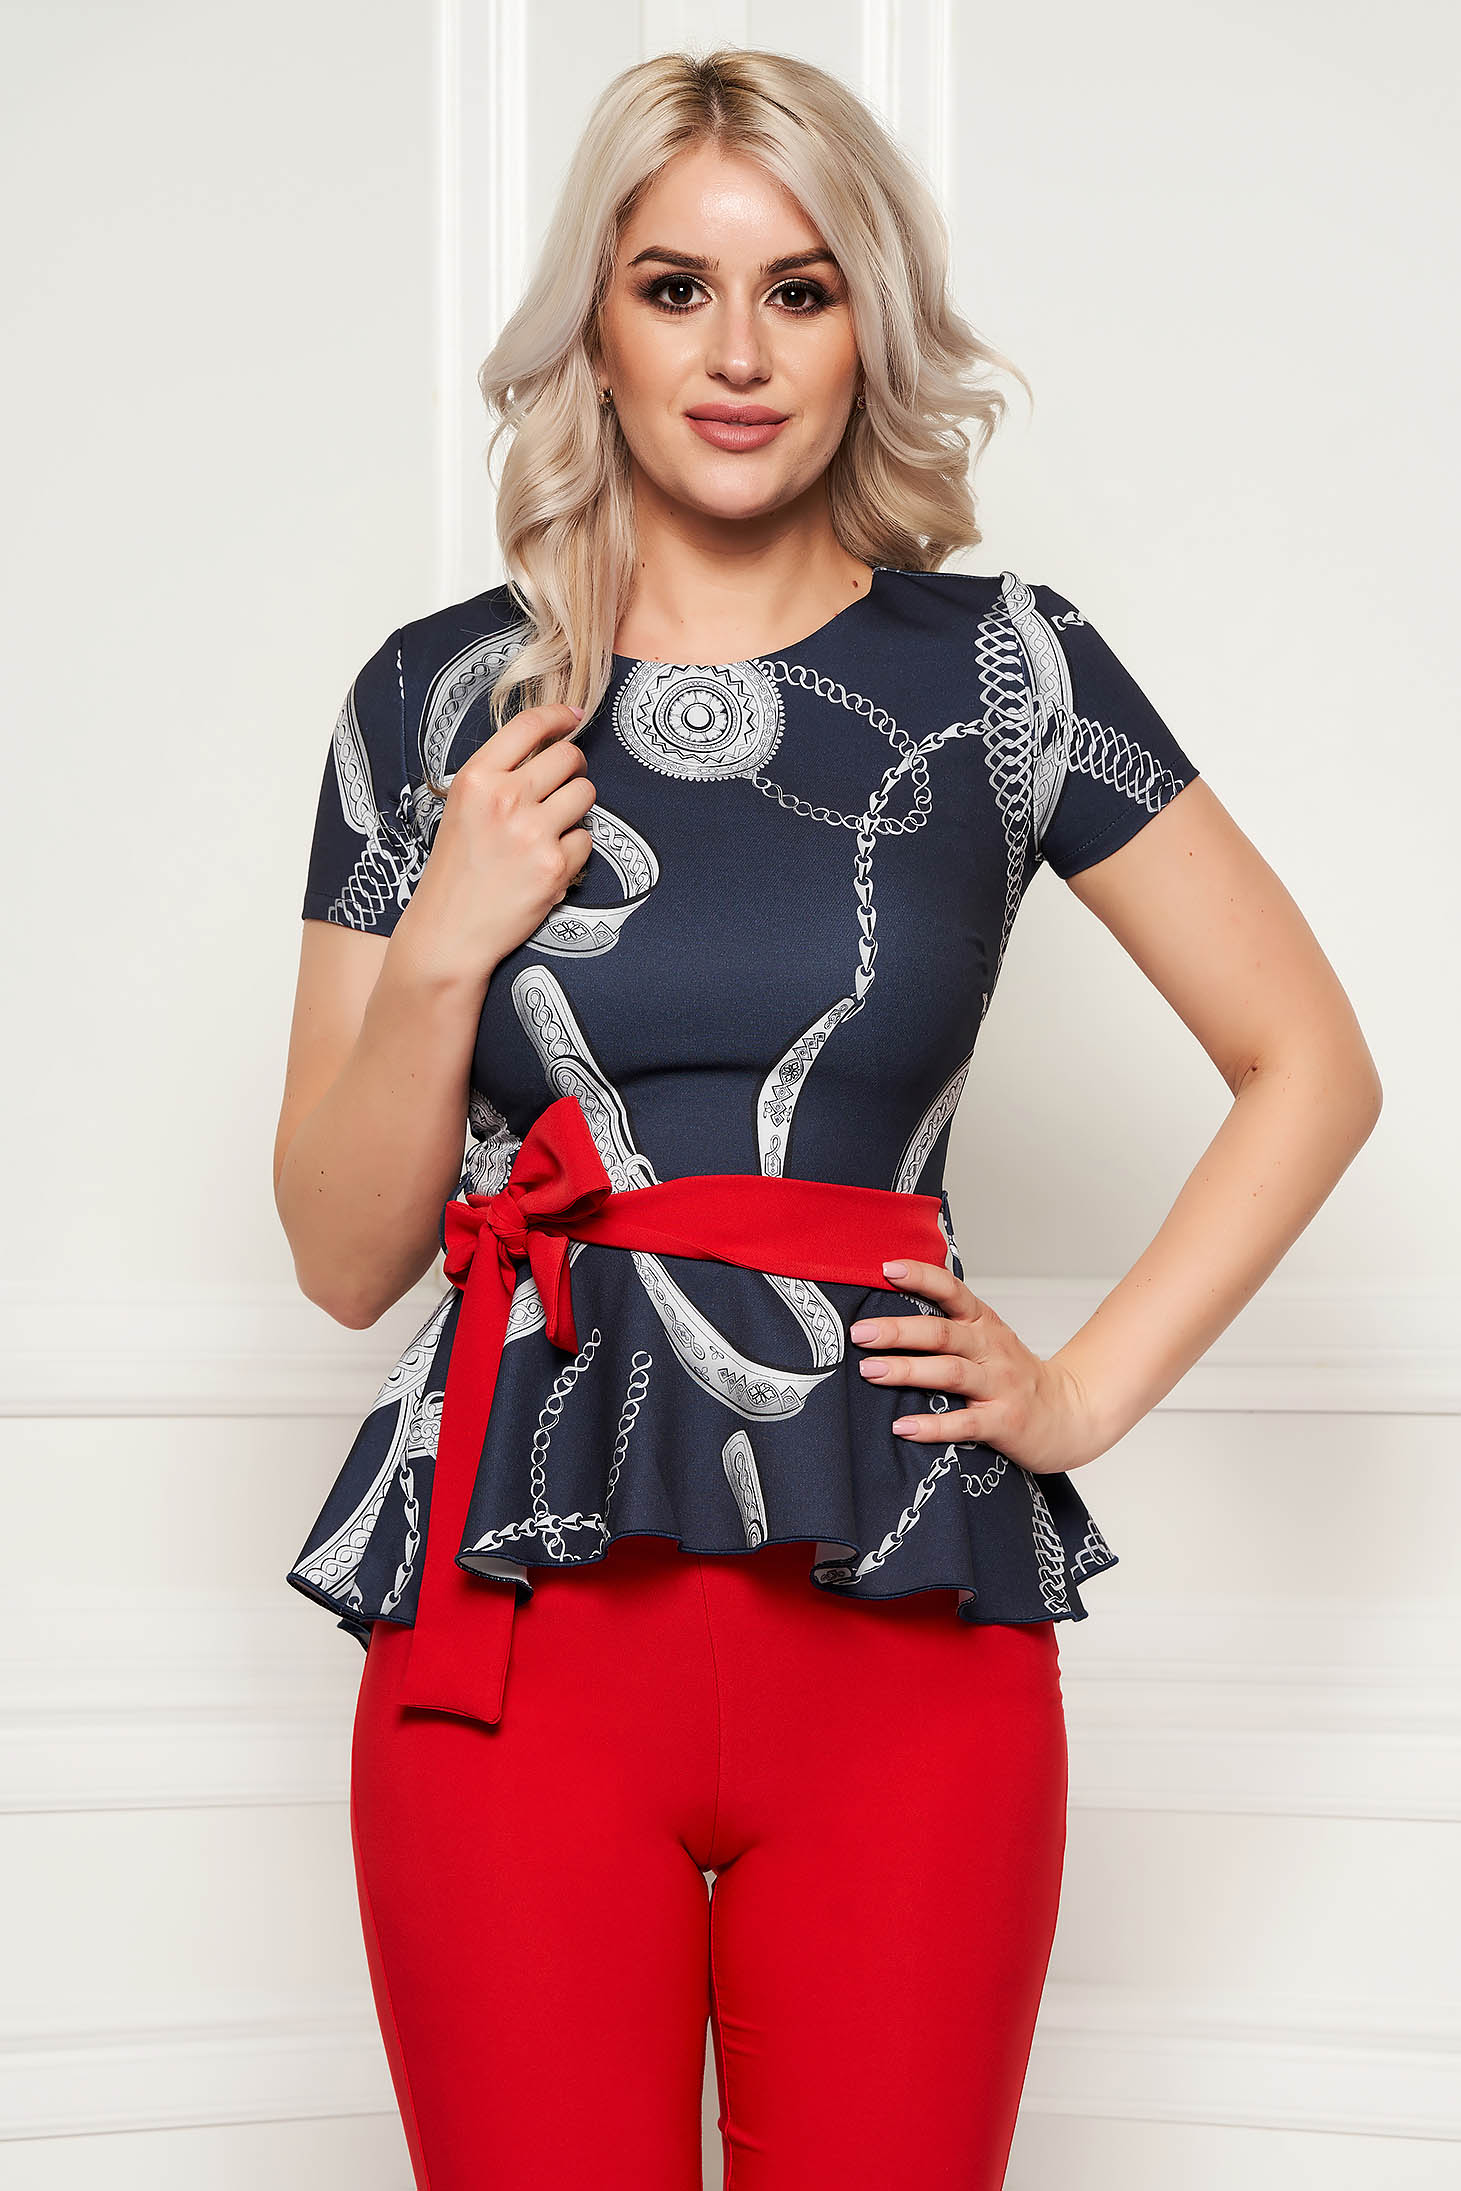 PrettyGirl darkgrey elegant women`s blouse with tented cut frilled flexible thin fabric/cloth accessorized with tied waistband